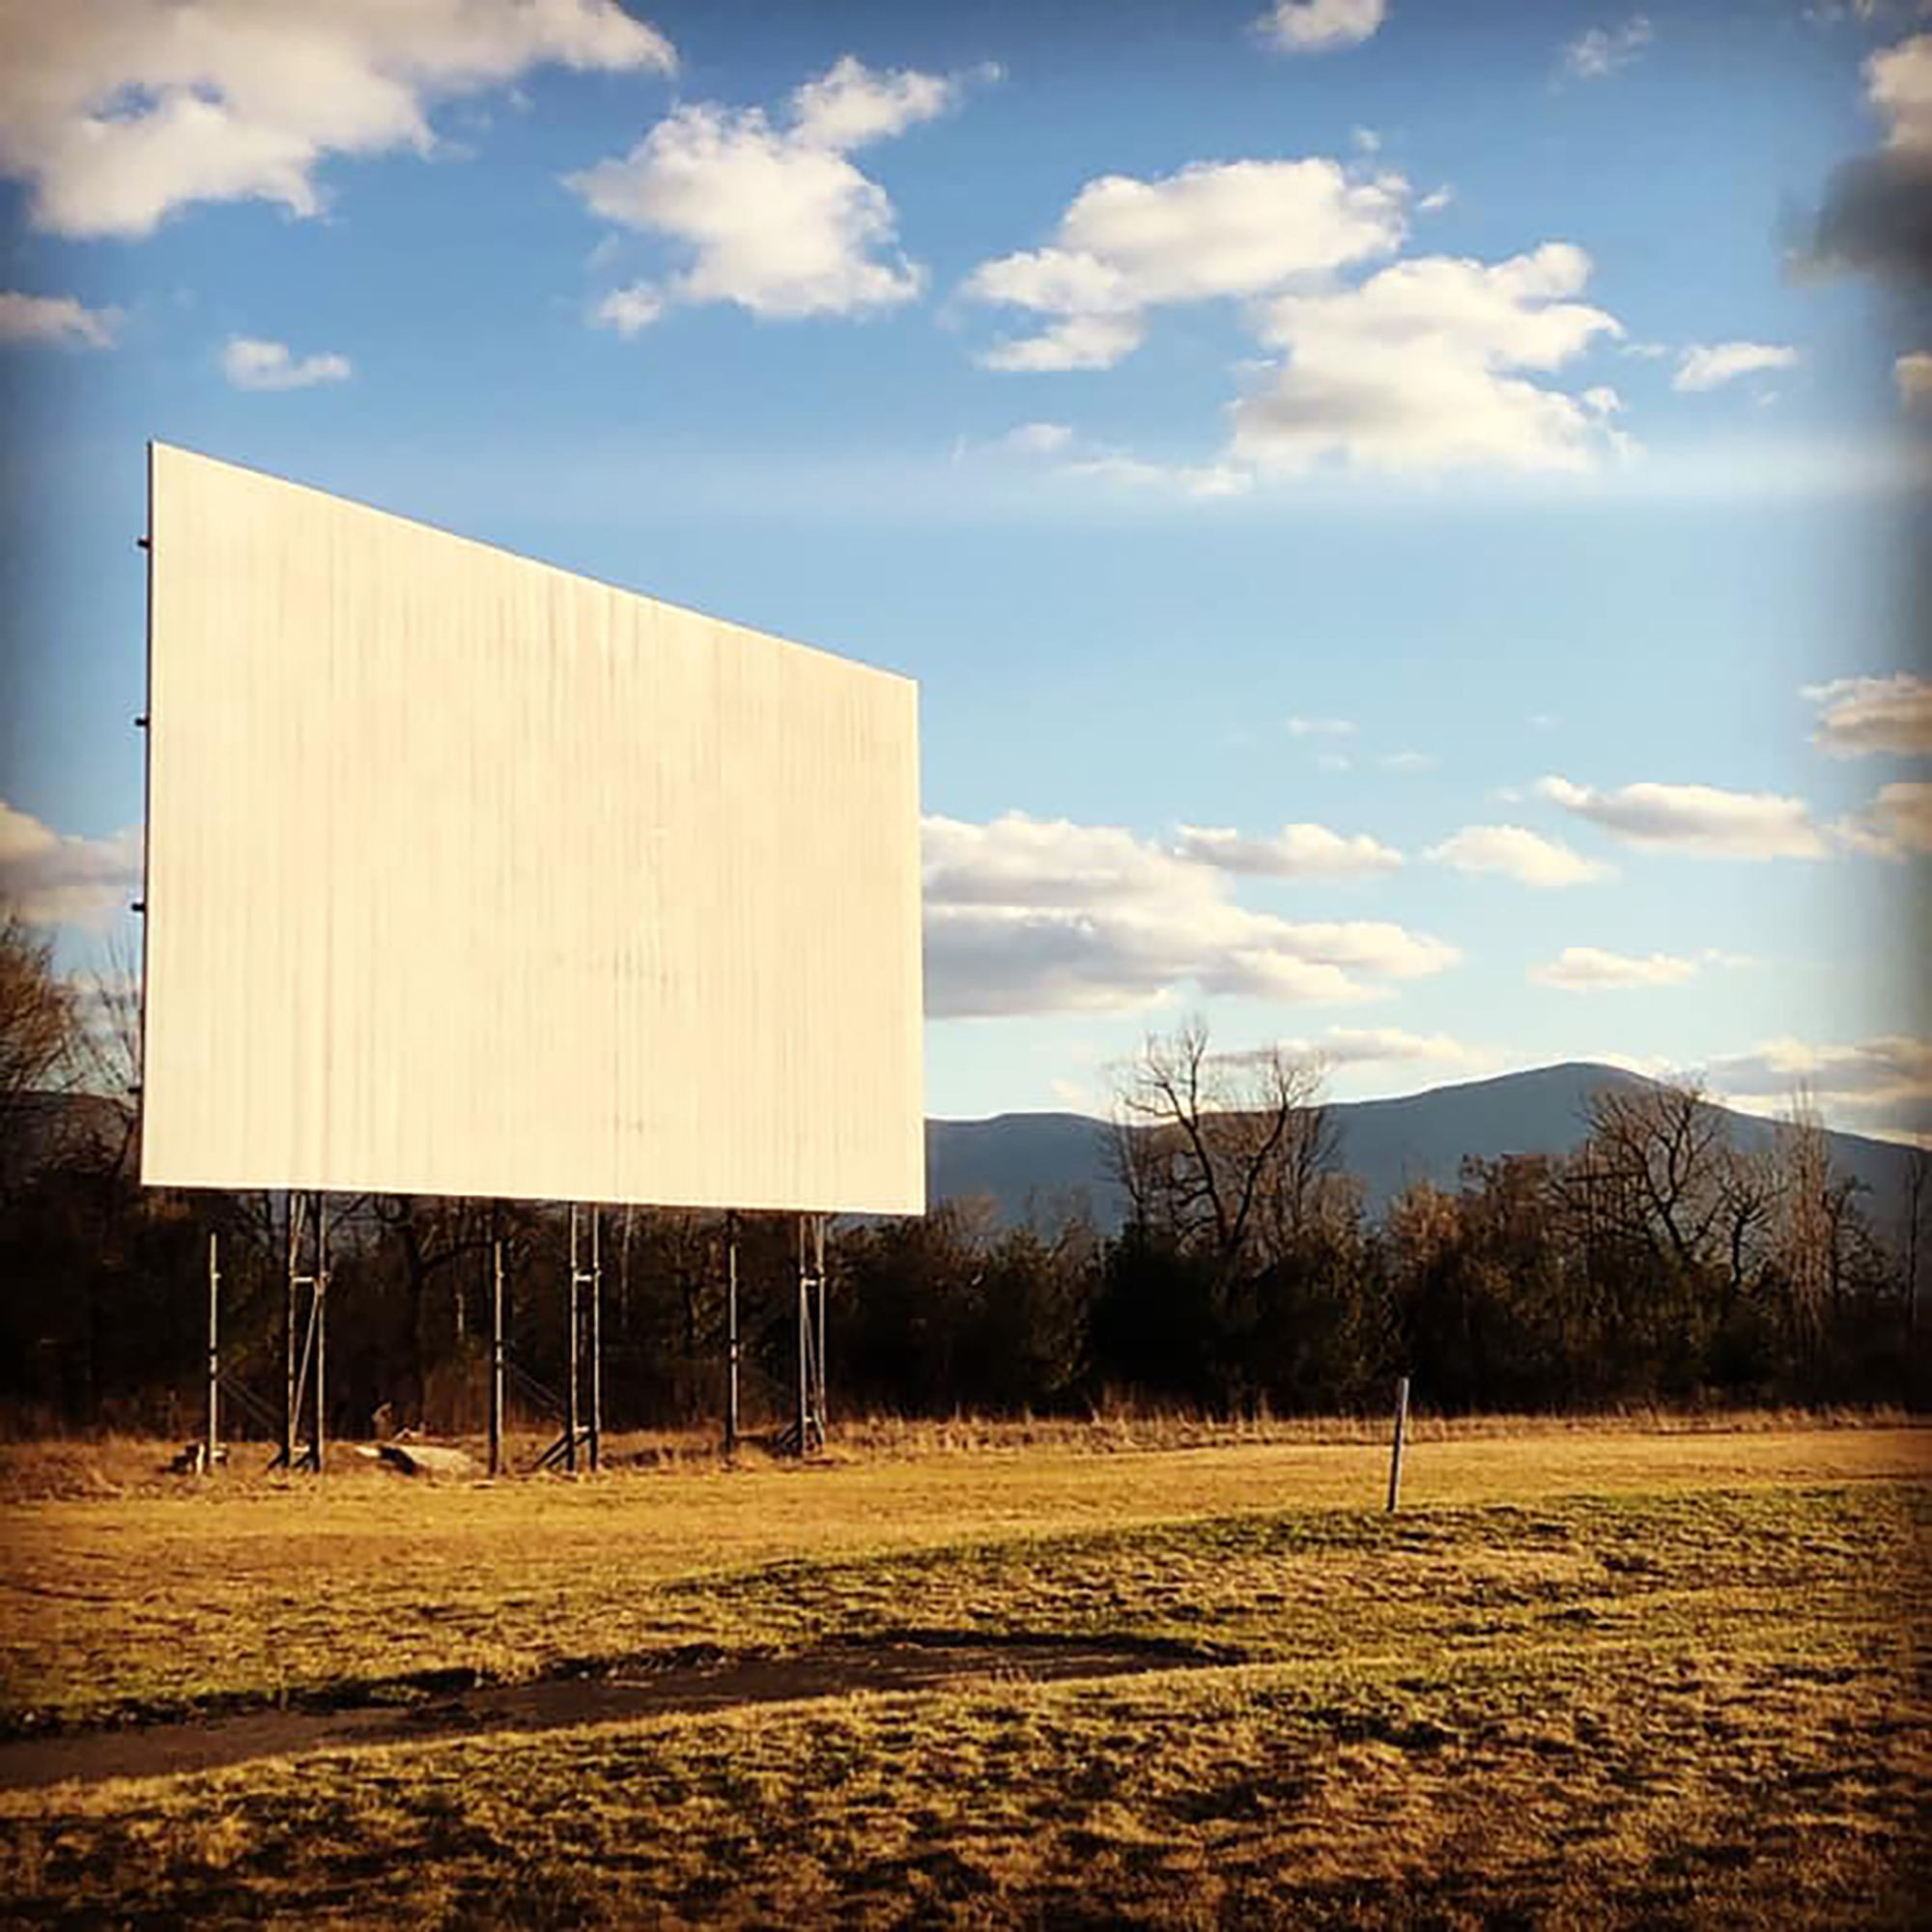 """Nestled in the valleys of upstate New York, just about three hours away from Manhattan, the Greenville Drive-In (also known as Drive-In 32) originally opened in 1959. Today, the theater is known for their snack """"shack,"""" which sells farm-to-table foods and meals alongside a beer garden stocked with local brews. Sometimes, the theater also hires live bands to perform music alongside classic black and white films."""